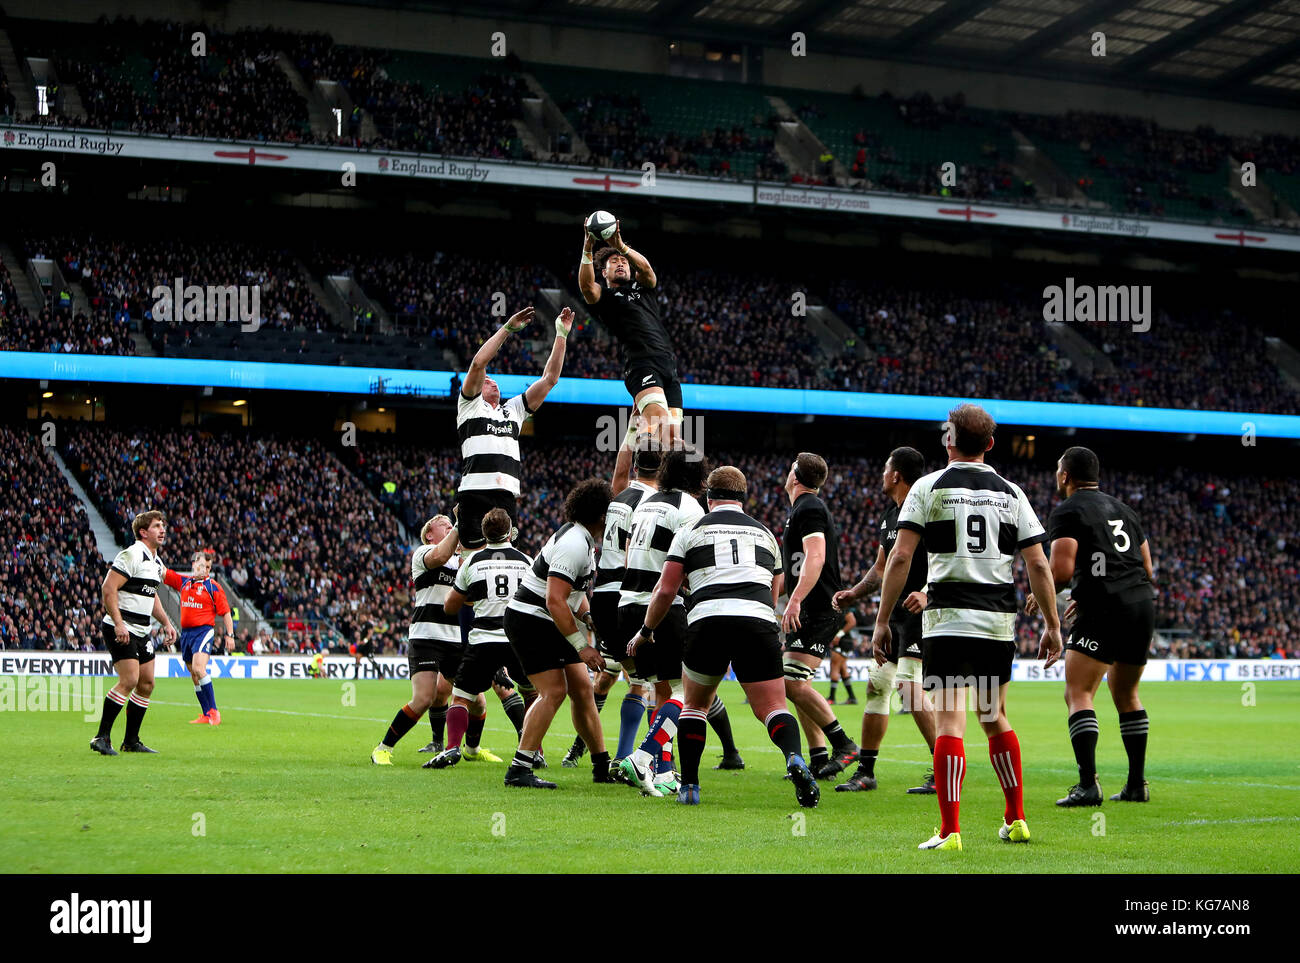 New Zealand's Ardie Savea (top) wins a lineout during the Autumn International match at Twickenham, London. - Stock Image